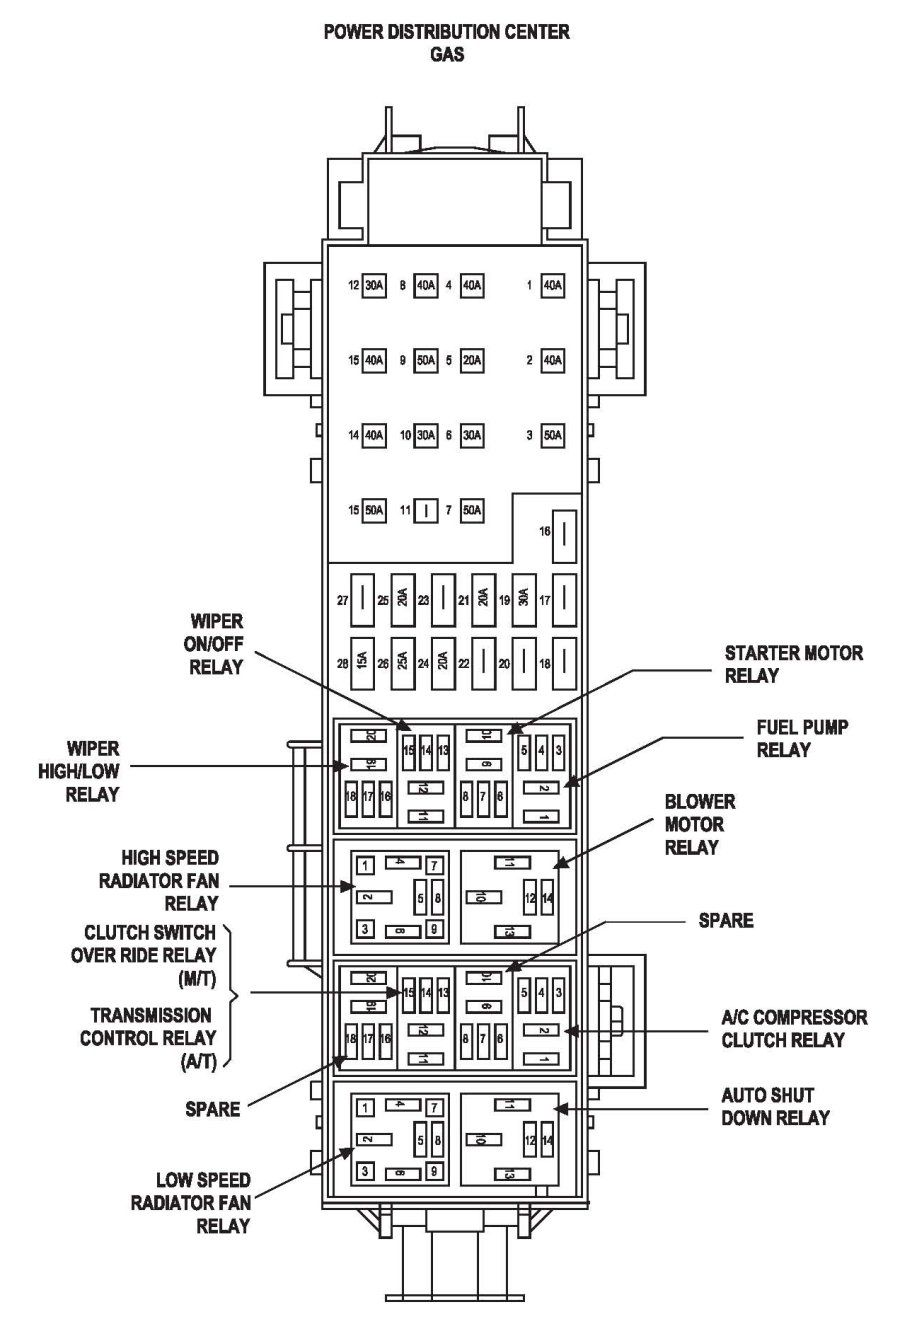 small resolution of 2001 pt cruiser fuse box diagram wiring diagram 2007